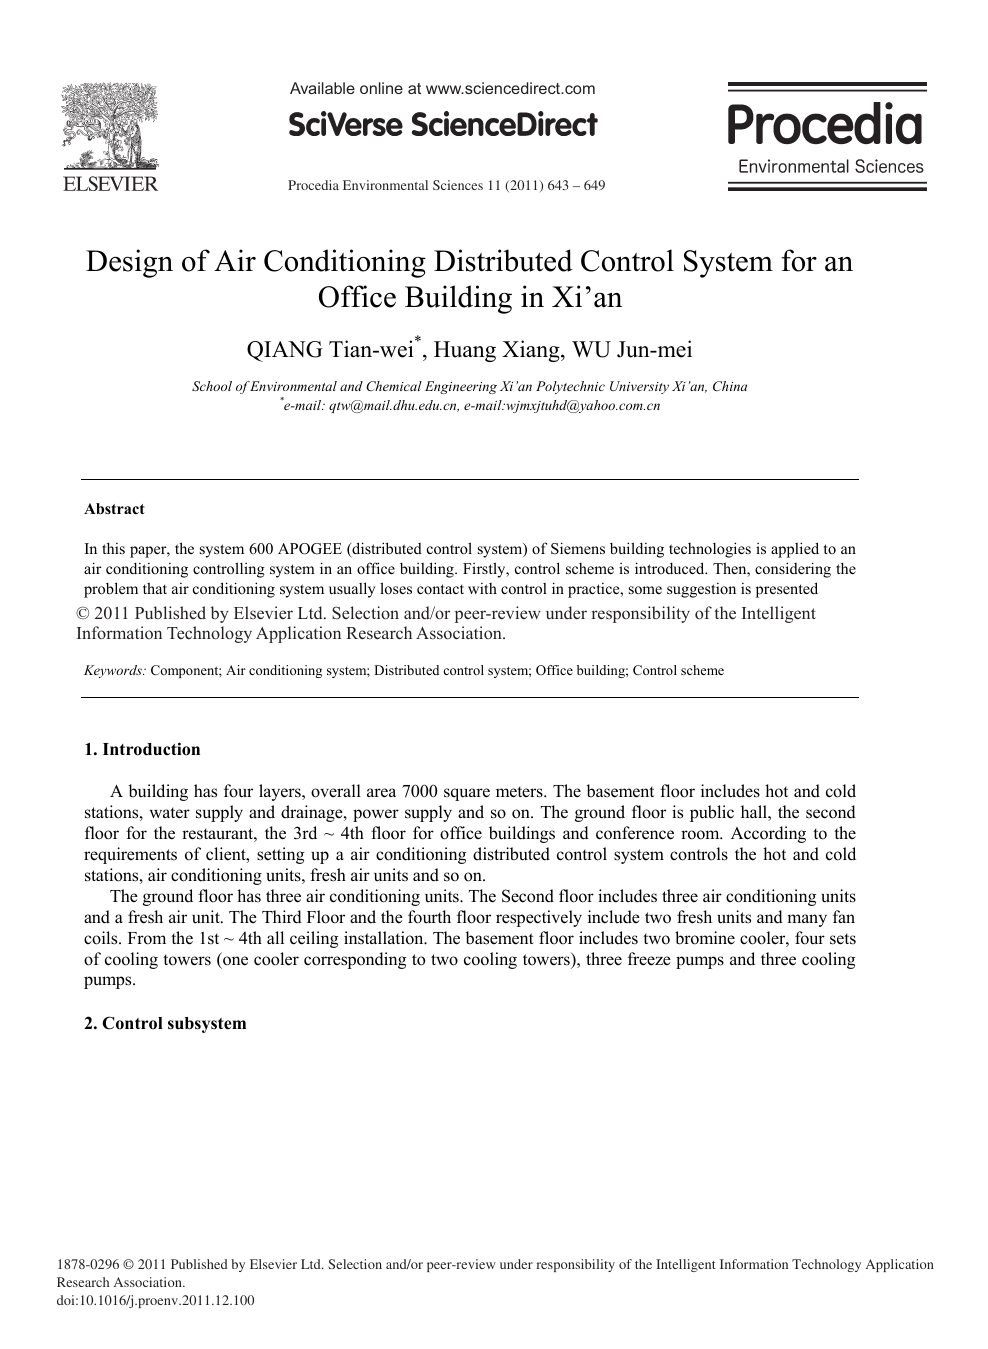 introduction of air conditioning system